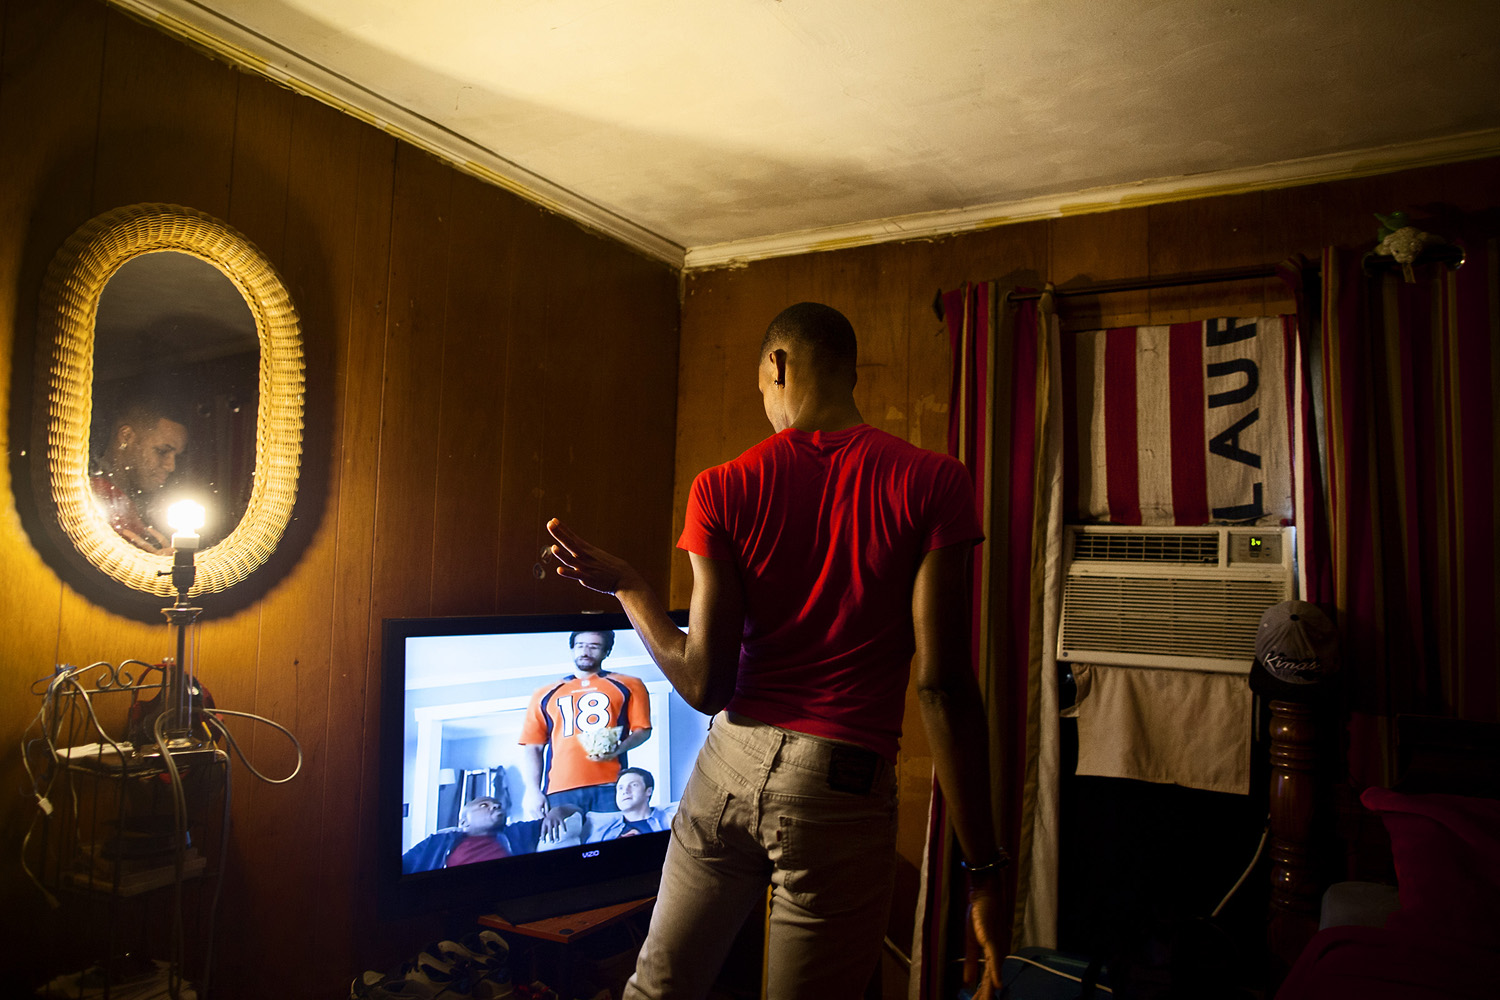 Adrian watches a TV commercial in his bedroom in his mother's house. Several of the members of the line live at home with relatives. Among their ranks, a number have faced considerable difficulty when dealing with family members' reactions to their orientation.